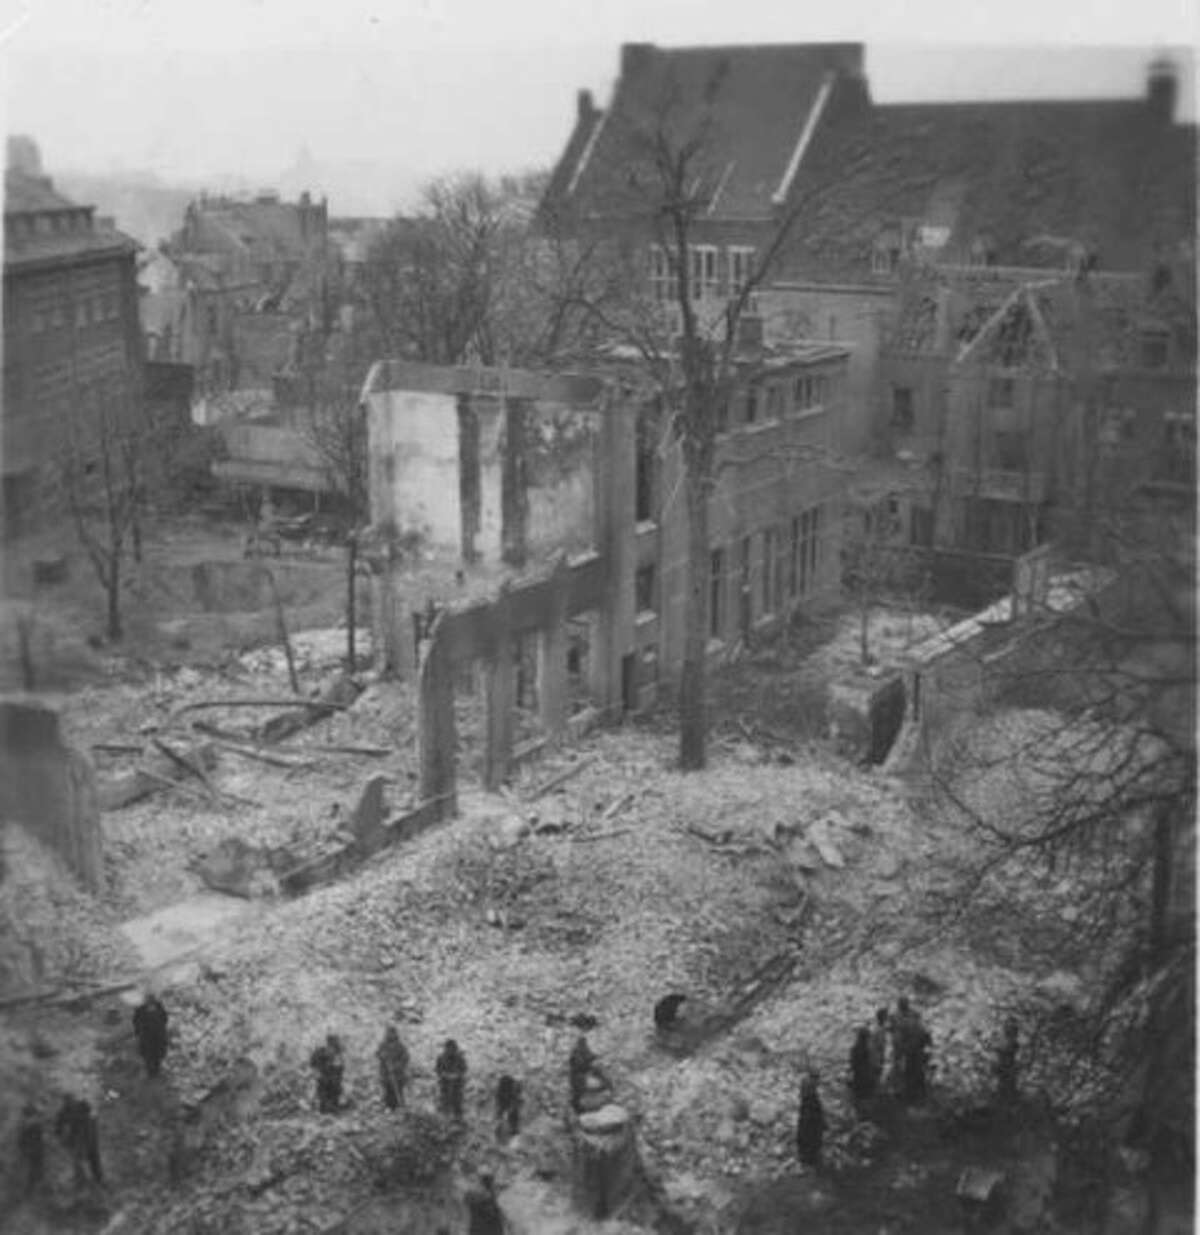 An image shows the destruction of the Dutch city of Nijmegen following bombardments and heavy fighting as U.S. and Allied troops in September 1944 drove the German army out of the strategic city at the confluence of three river near the German border (Photo courtesy of Anja Adriaans)